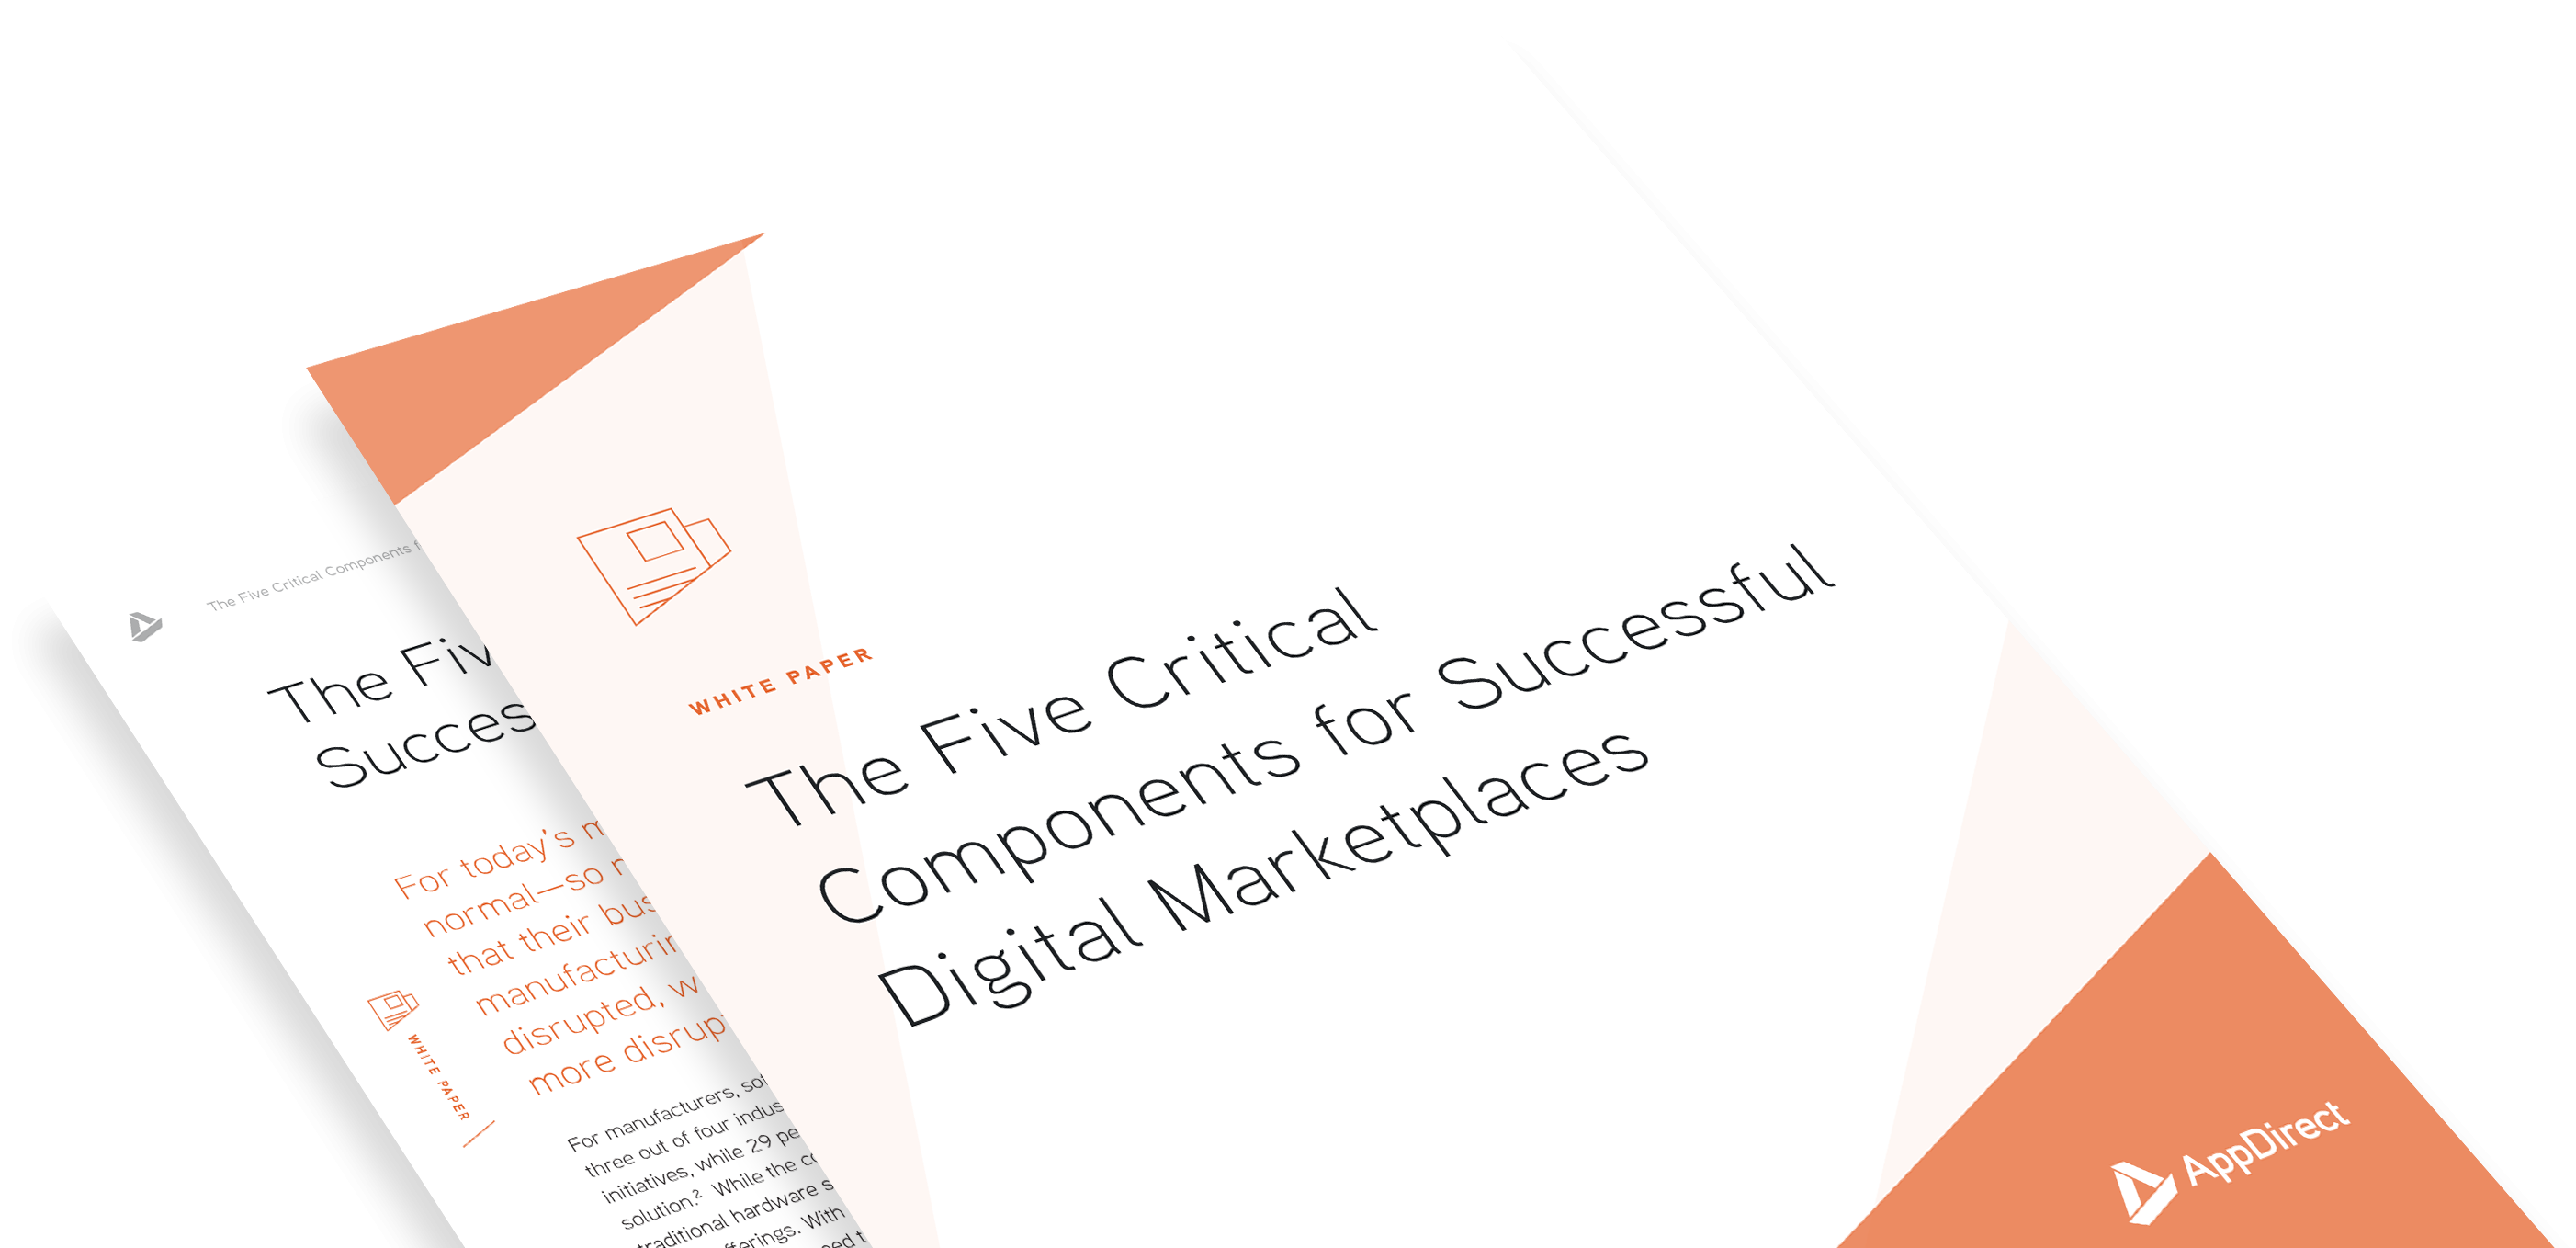 5 Critical Components for Successful Digital Marketplaces